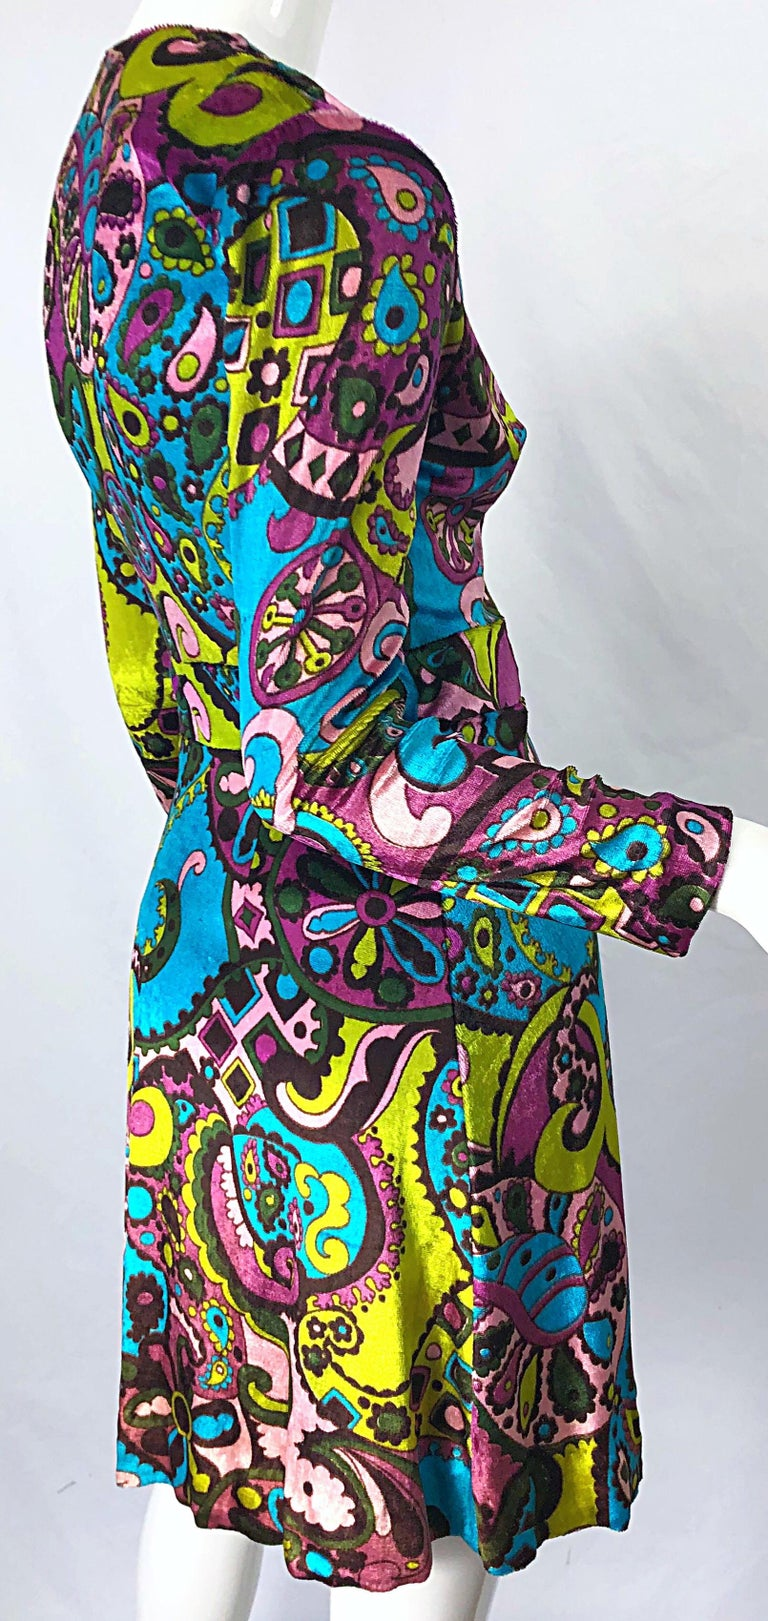 1970s Psychedelic Paisley Print Colorful Velour Vintage 70s Wrap Dress For Sale 7